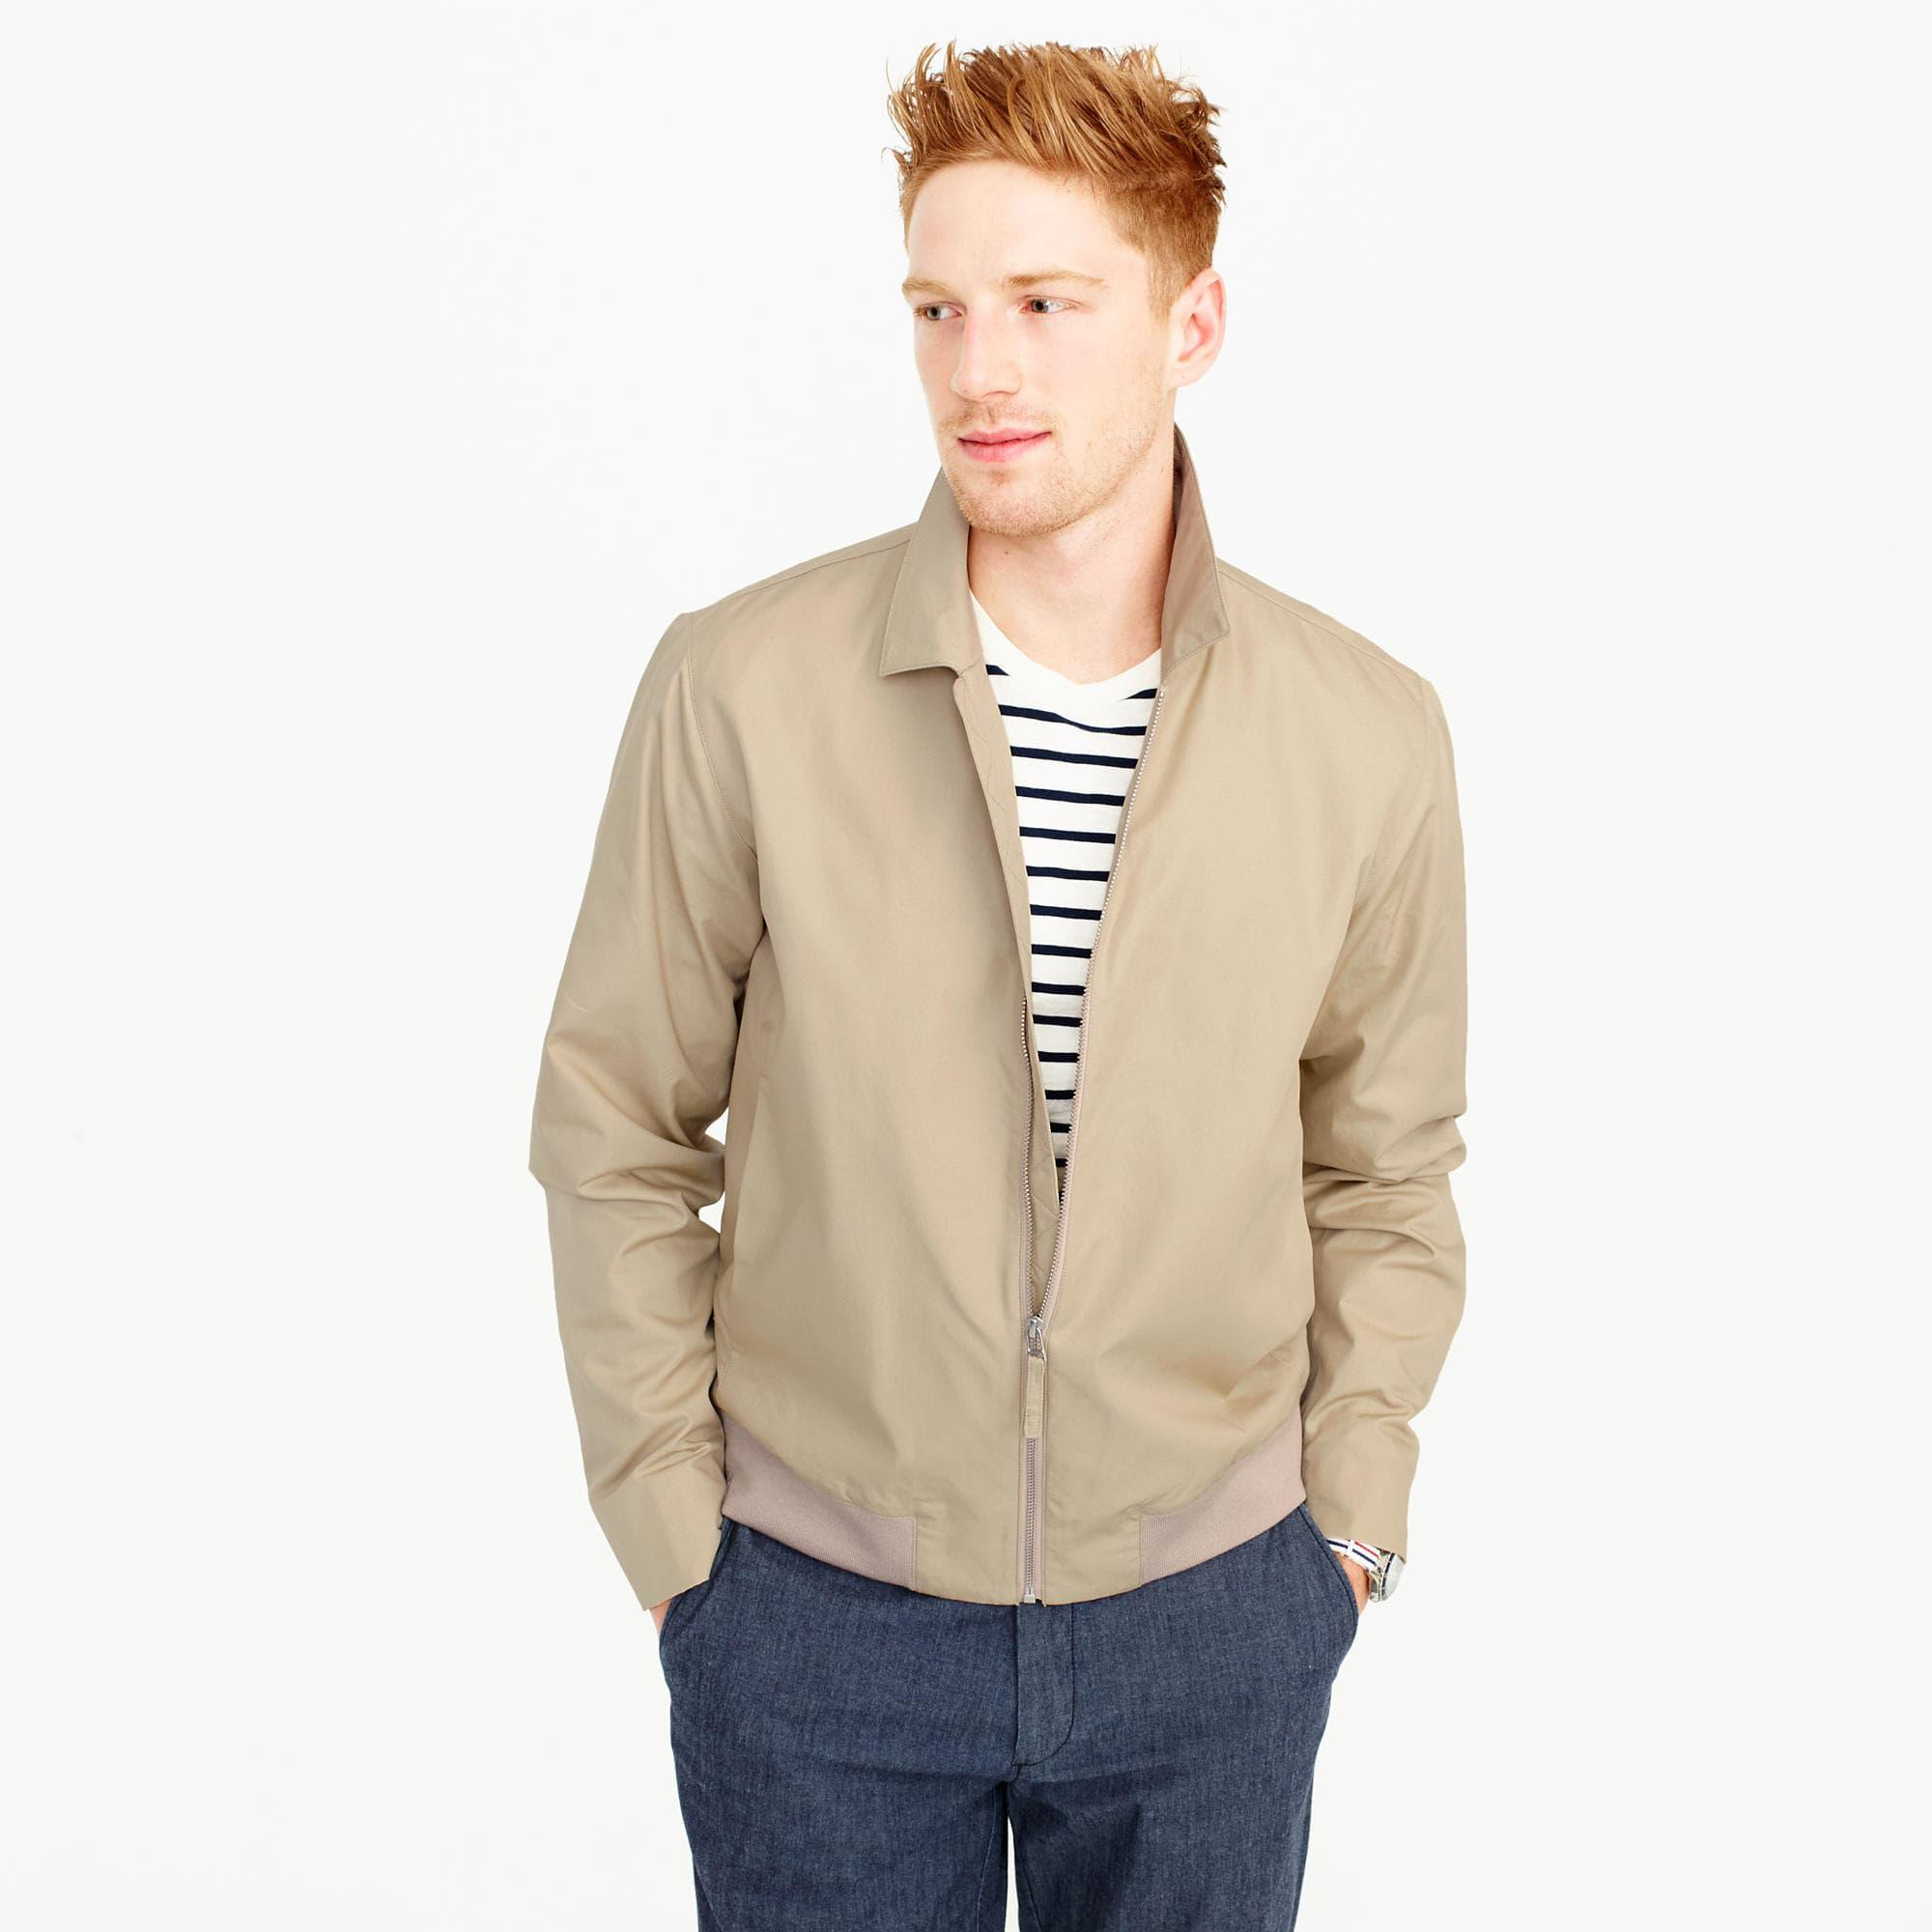 2b4baace2ce Lyst - J.Crew Norse Projects Trygve Cotton Jacket in Natural for Men